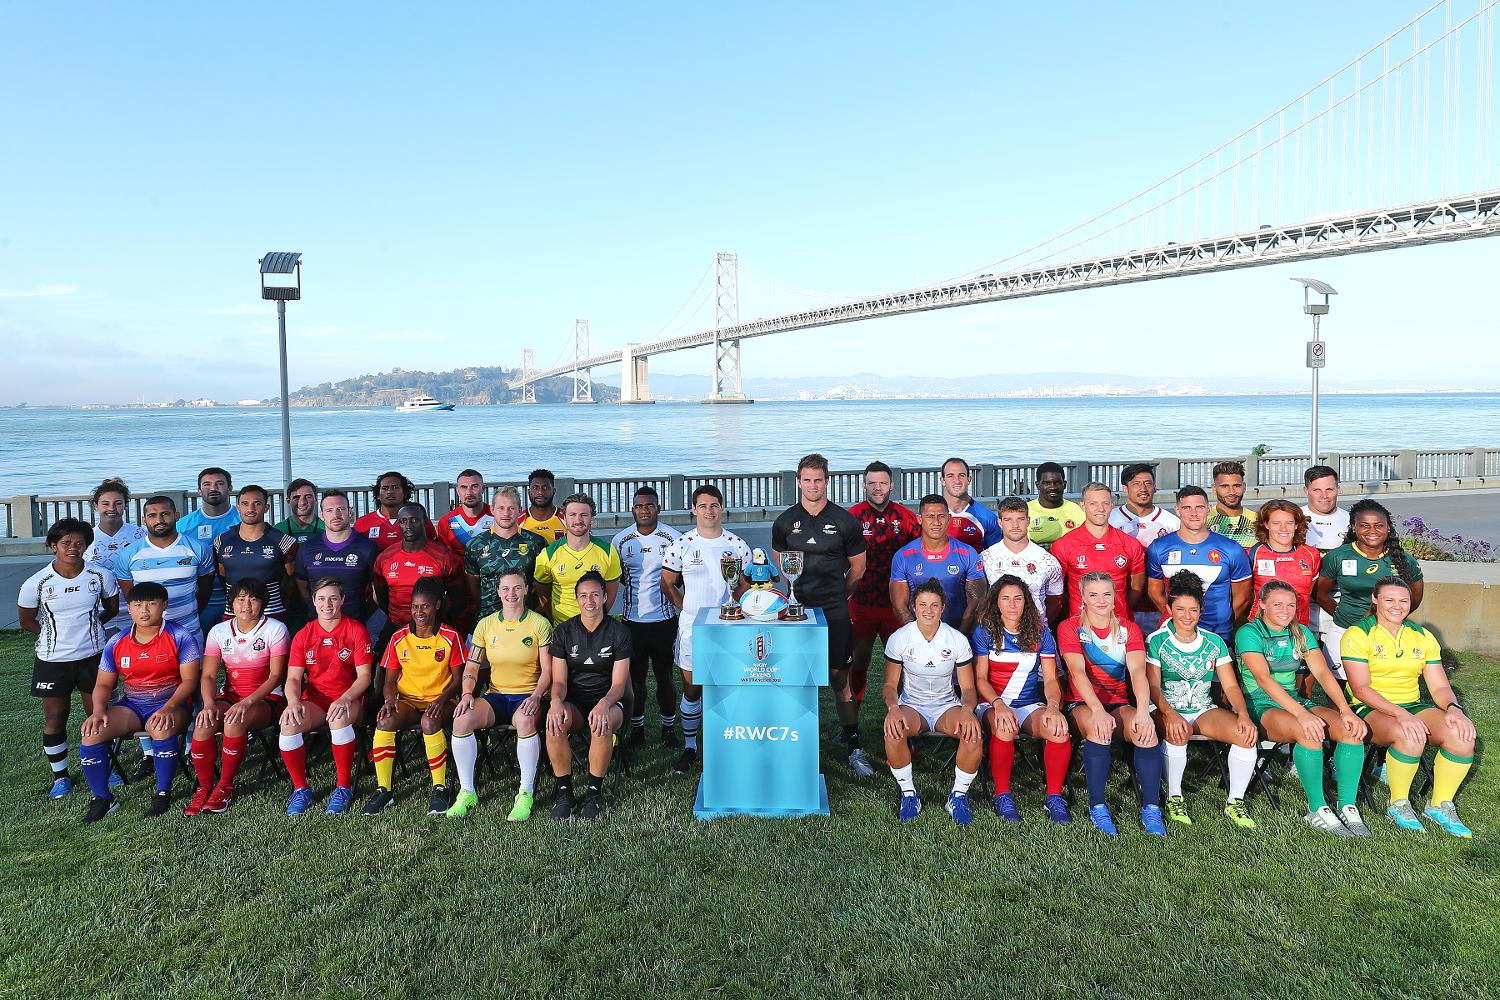 Rugby World Cup Sevens 2018 - Captains' photocall